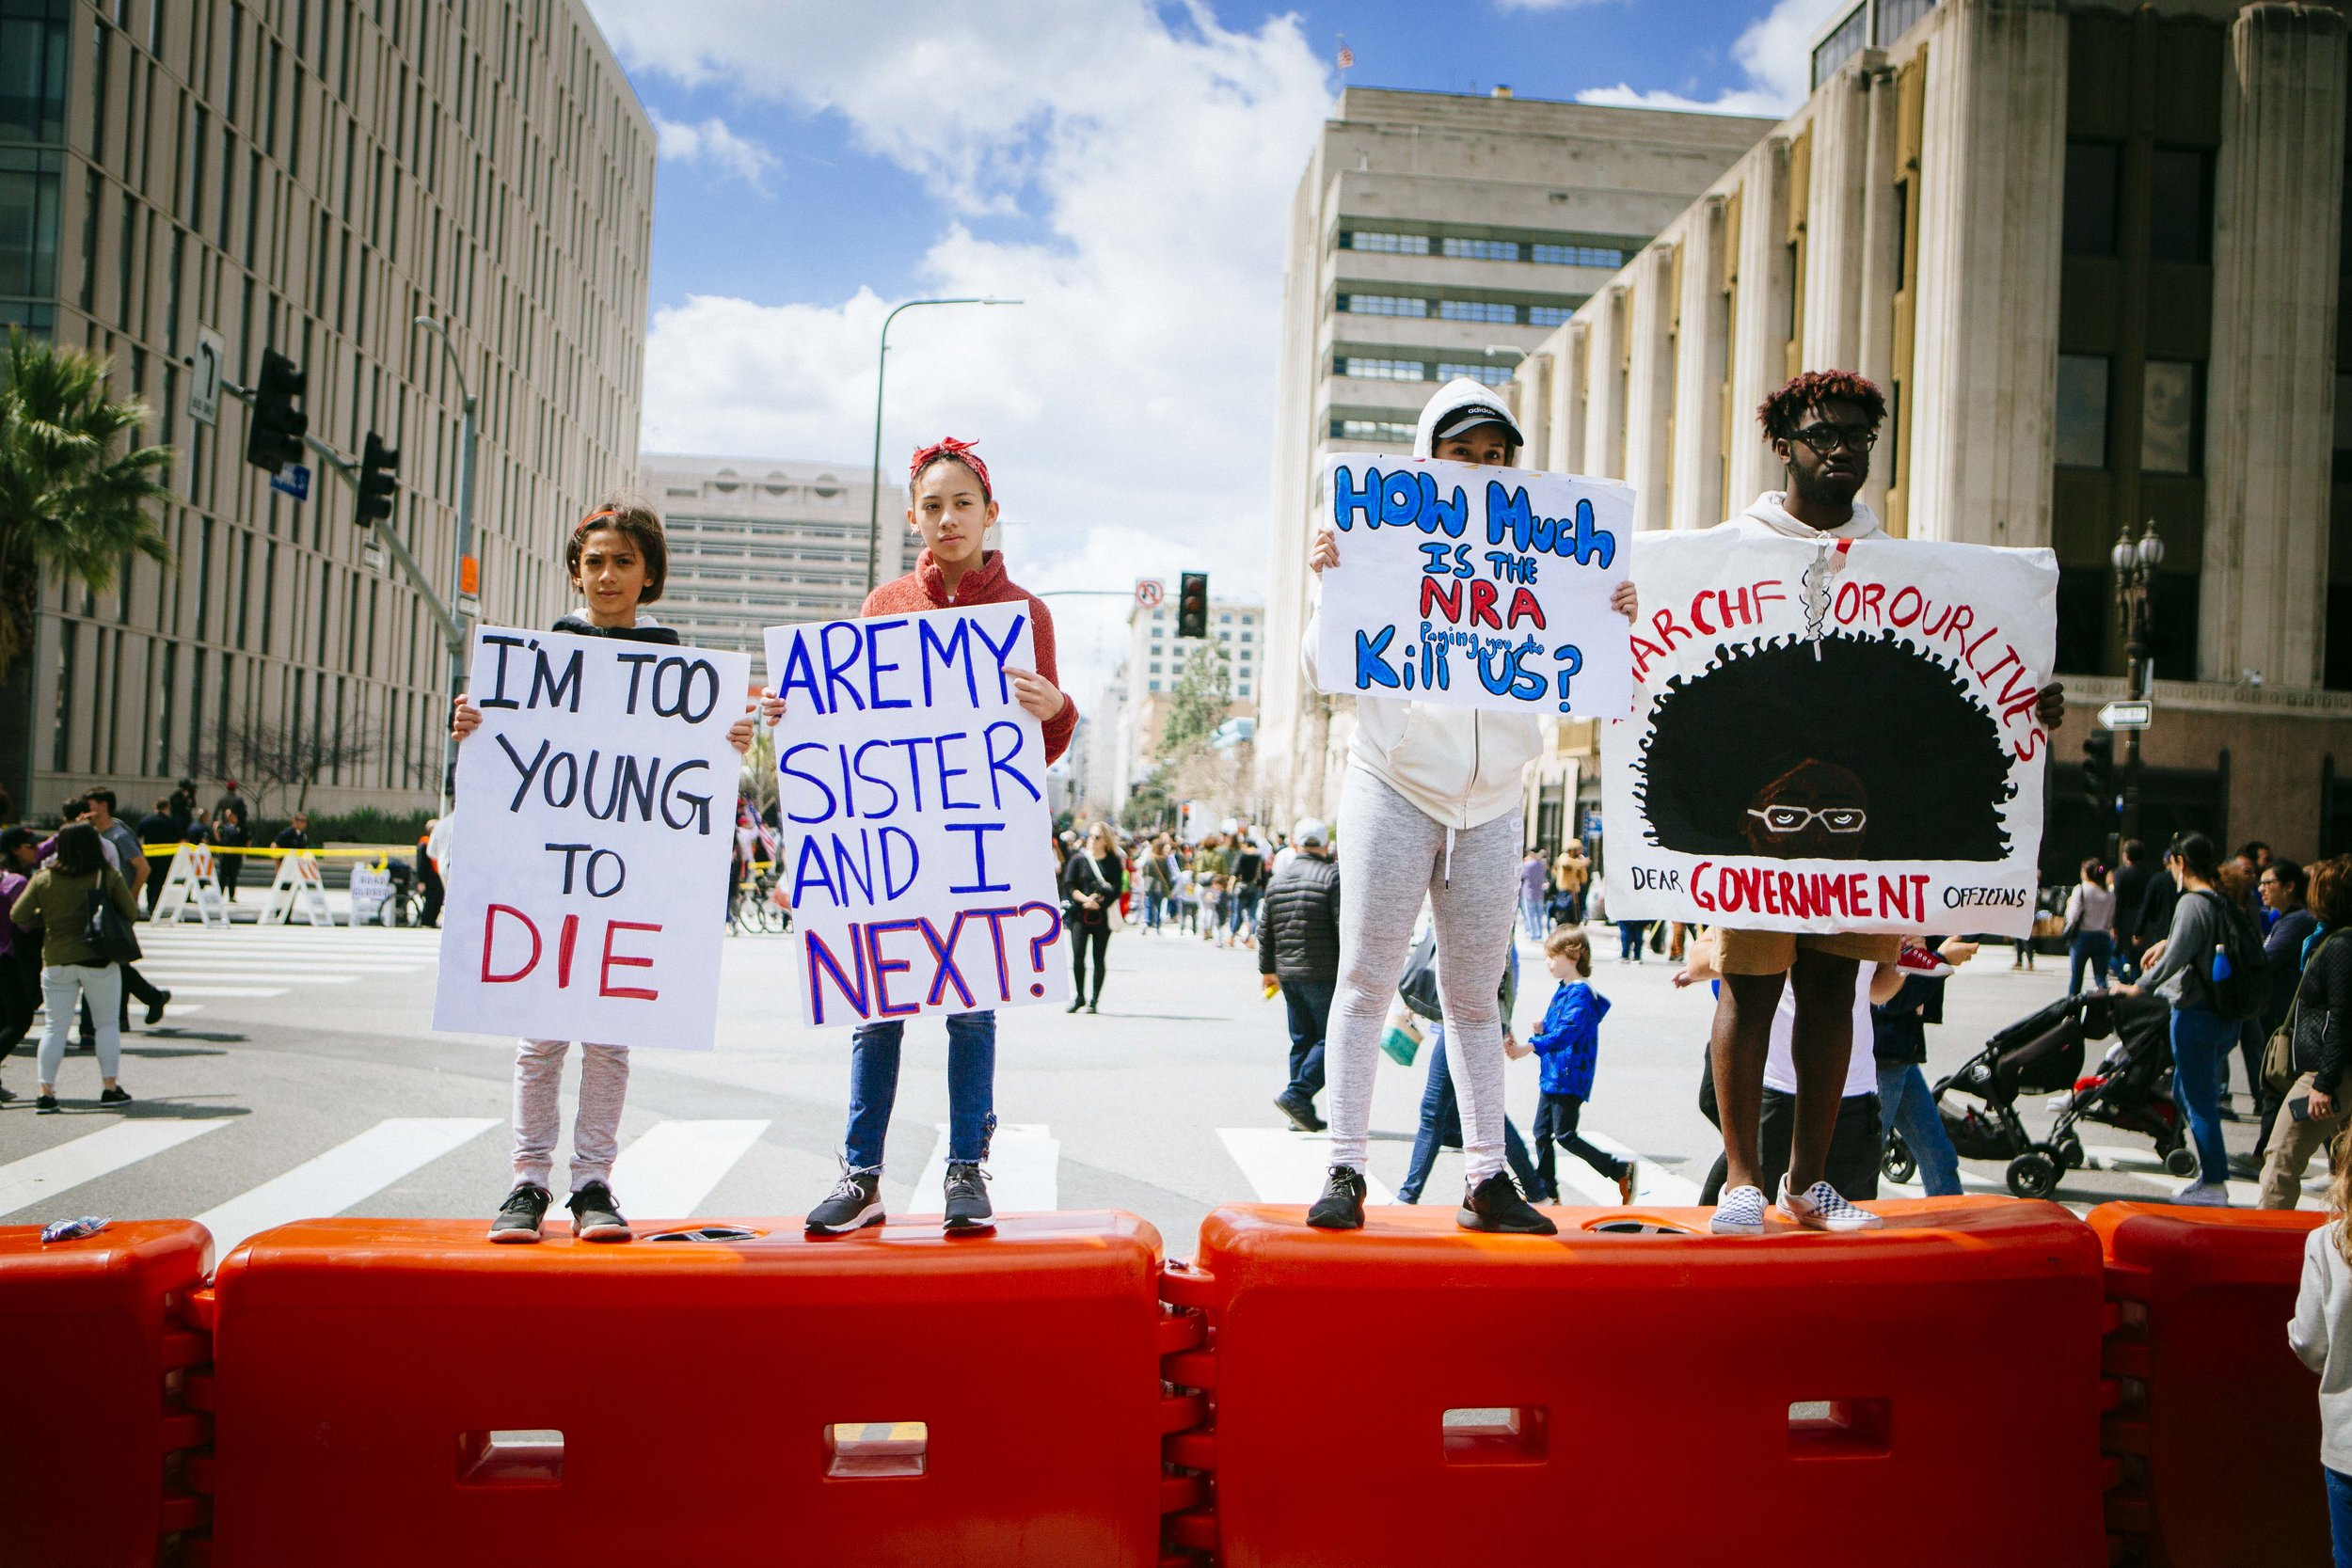 "[Image Description: Four young people stand on a red barrier holding signs. The first sign says ""I'm too young to die."" The second sign says ""Are my sister and I next?"", the next sign says ""How much is the NRA paying you to kill us?"" The last sign has a drawing of the top of a black person's head with a large afro, and around the afro says ""March for our lives"" underneath the eyes says ""Dear Government Officials""]"